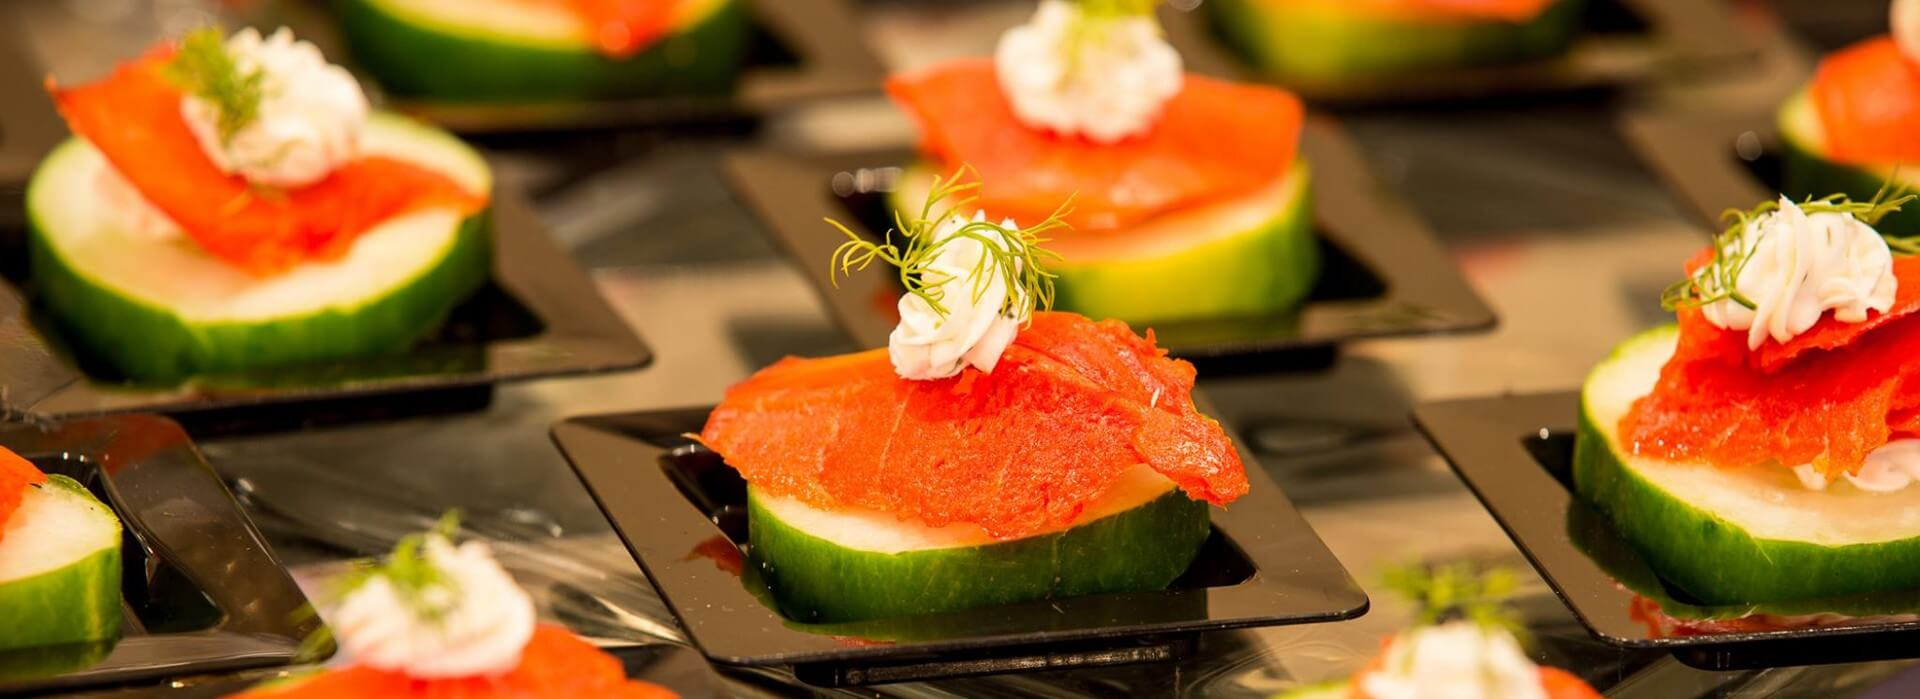 Smoked Salmon Appetizer Hors D Oeuvres Menu Top Banner 2018